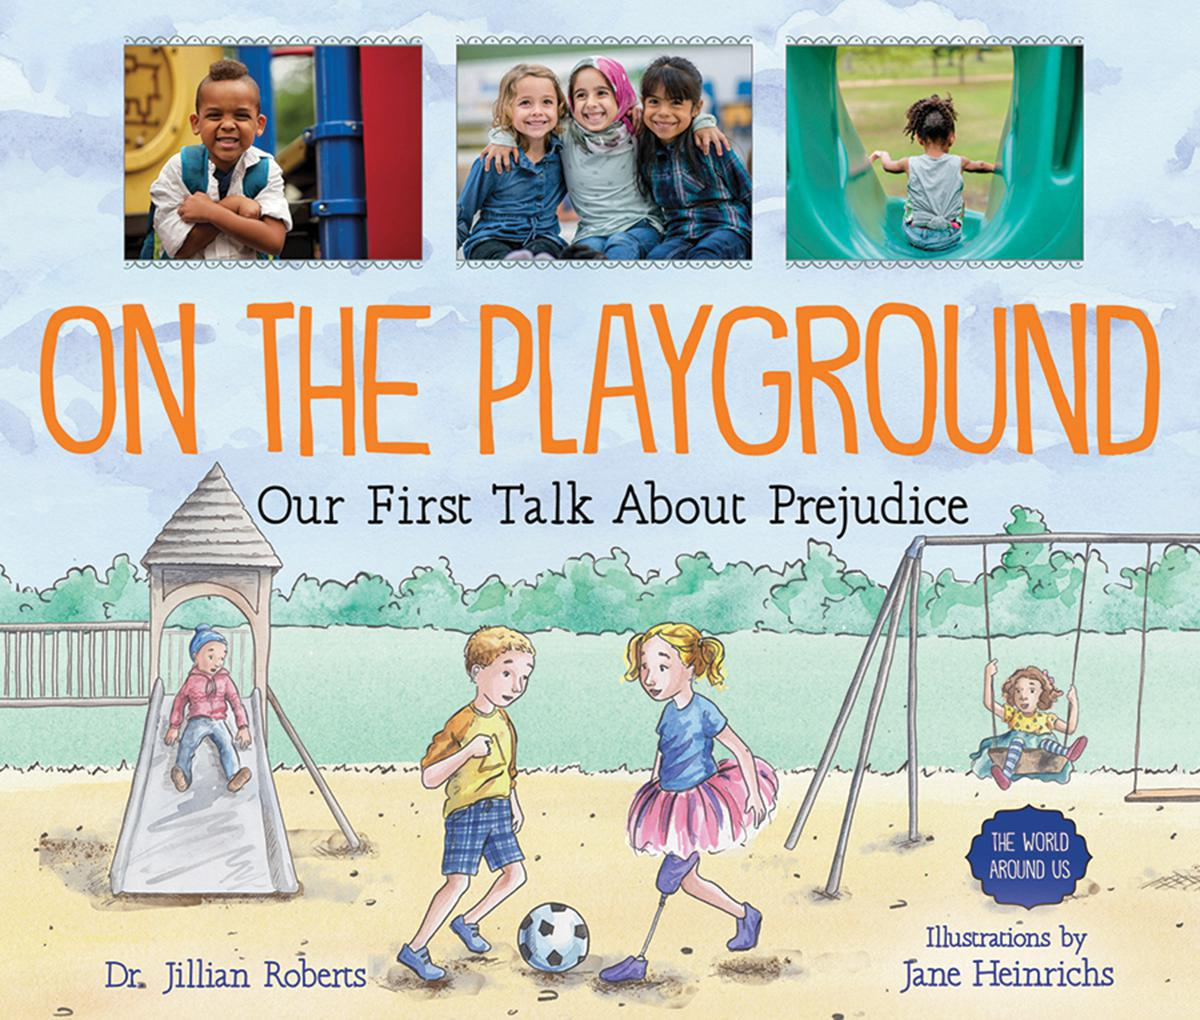 On the Playground: Our First Talk About Prejudice